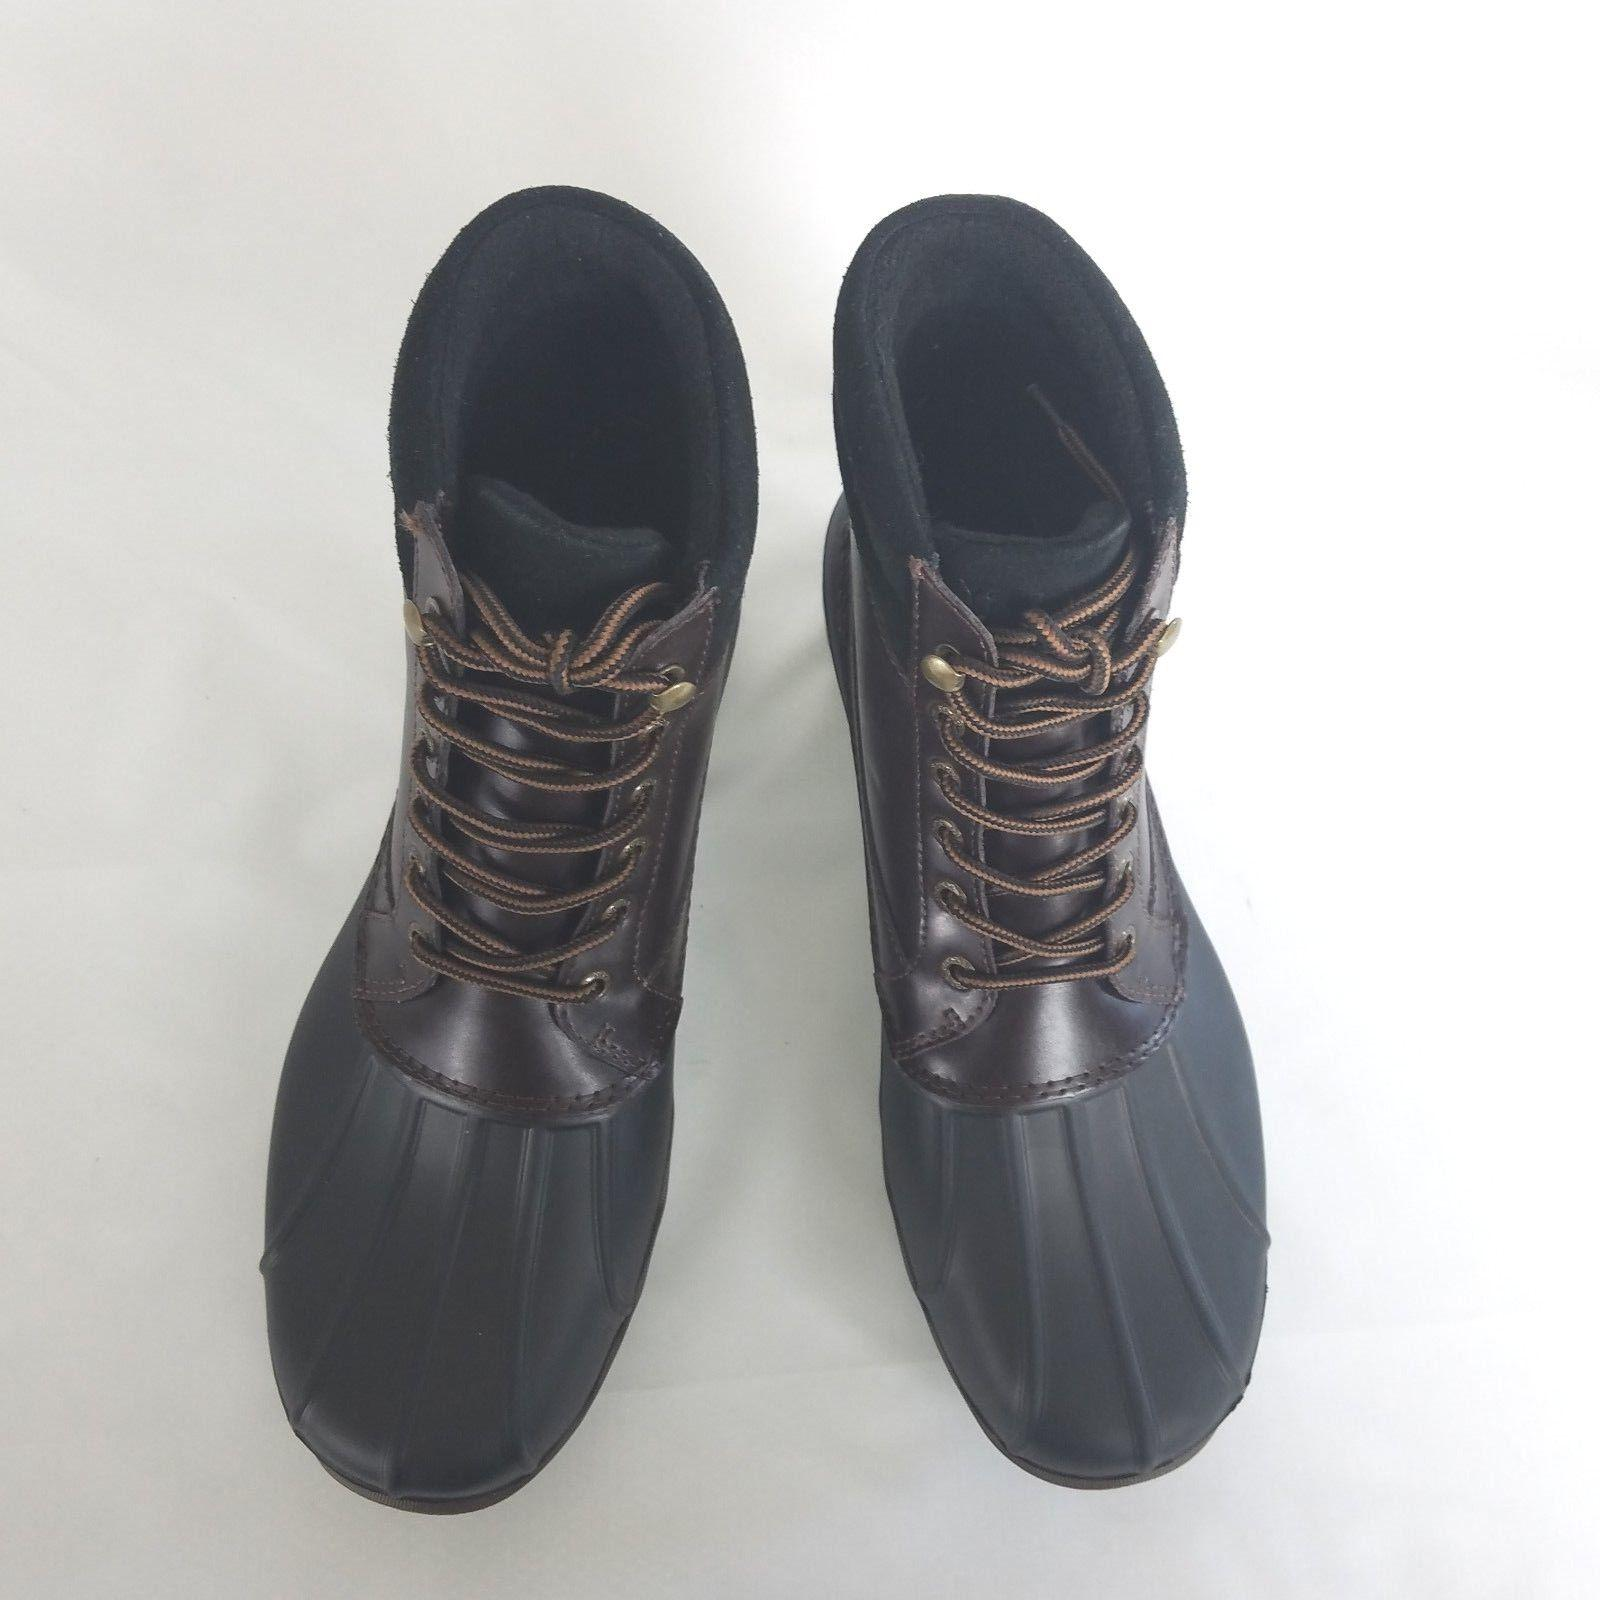 Sperry Top-Sider Duck Boots M